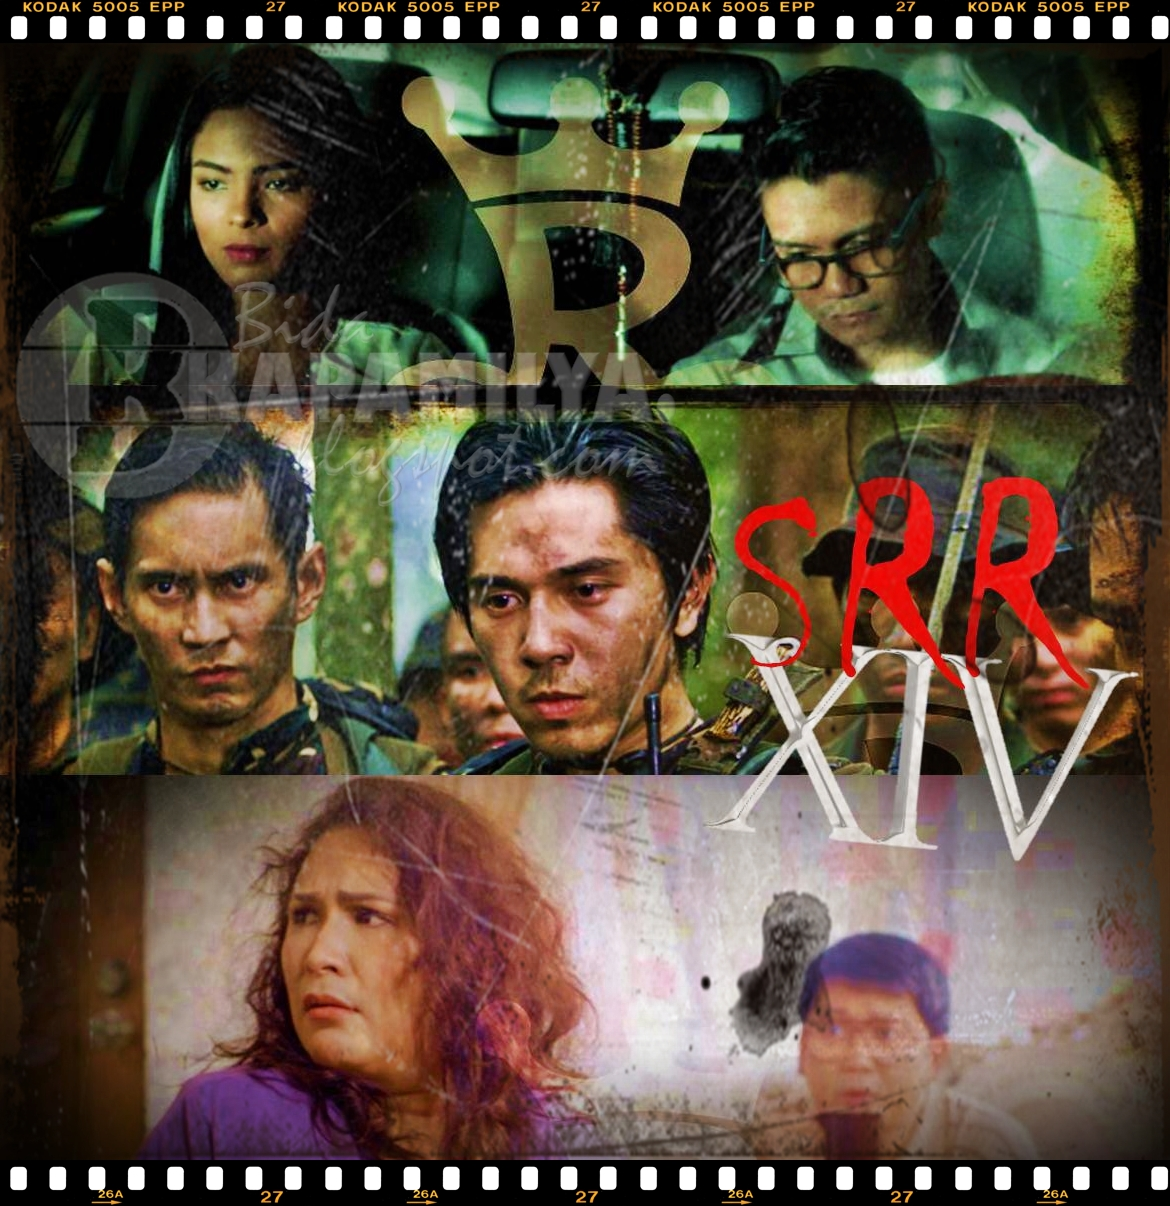 watch Shake, Rattle and Roll 14 pinoy movie online streaming best pinoy horror movies